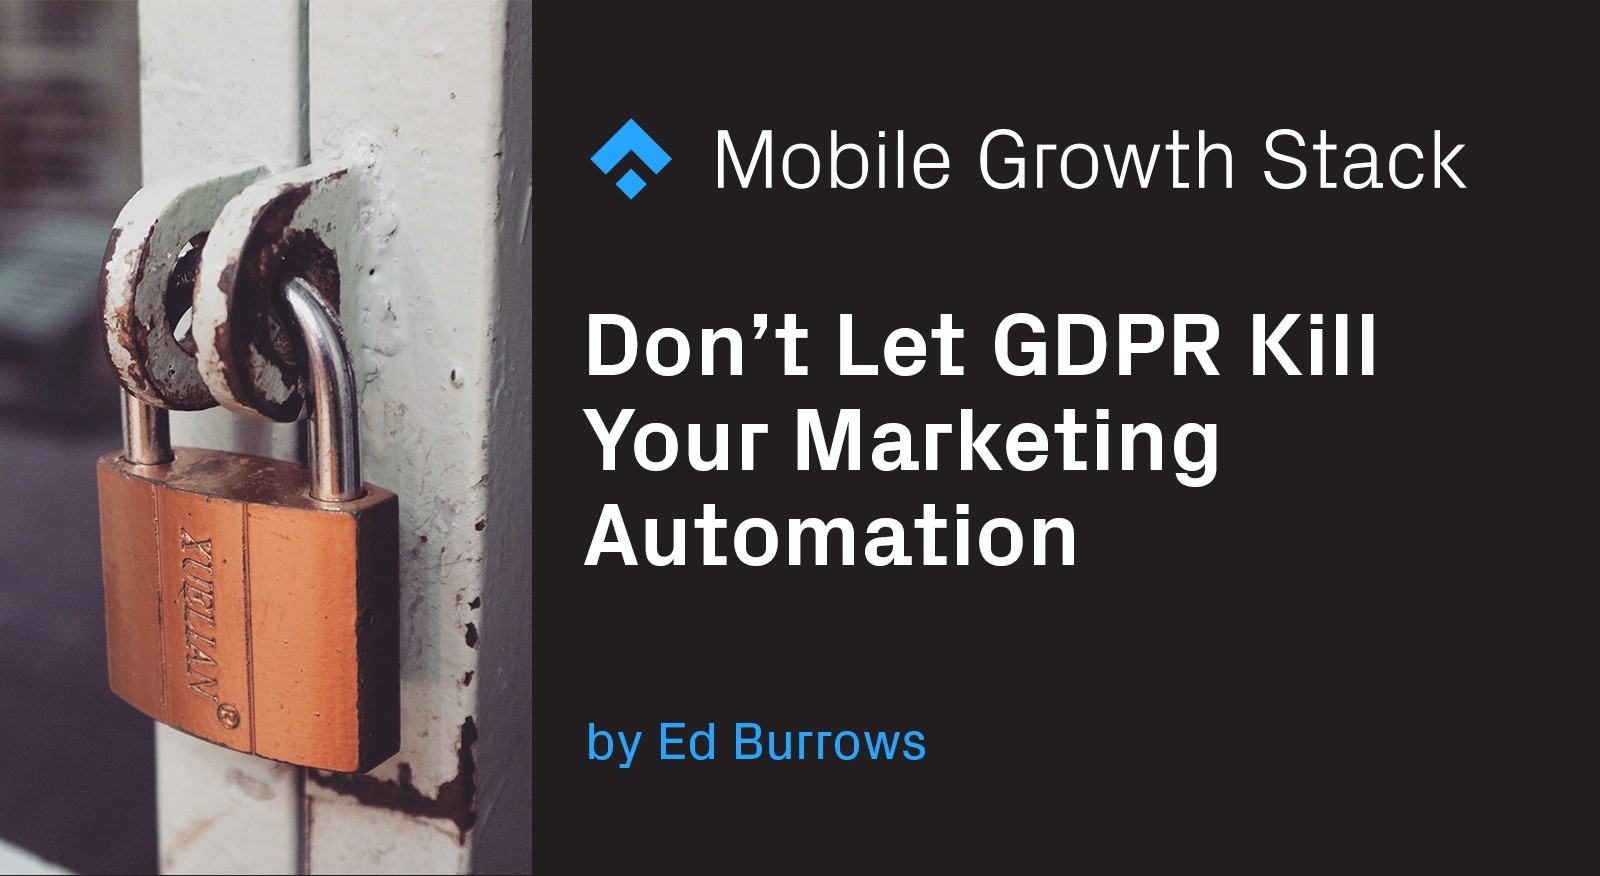 Don't Let GDPR Kill Your Marketing Automation